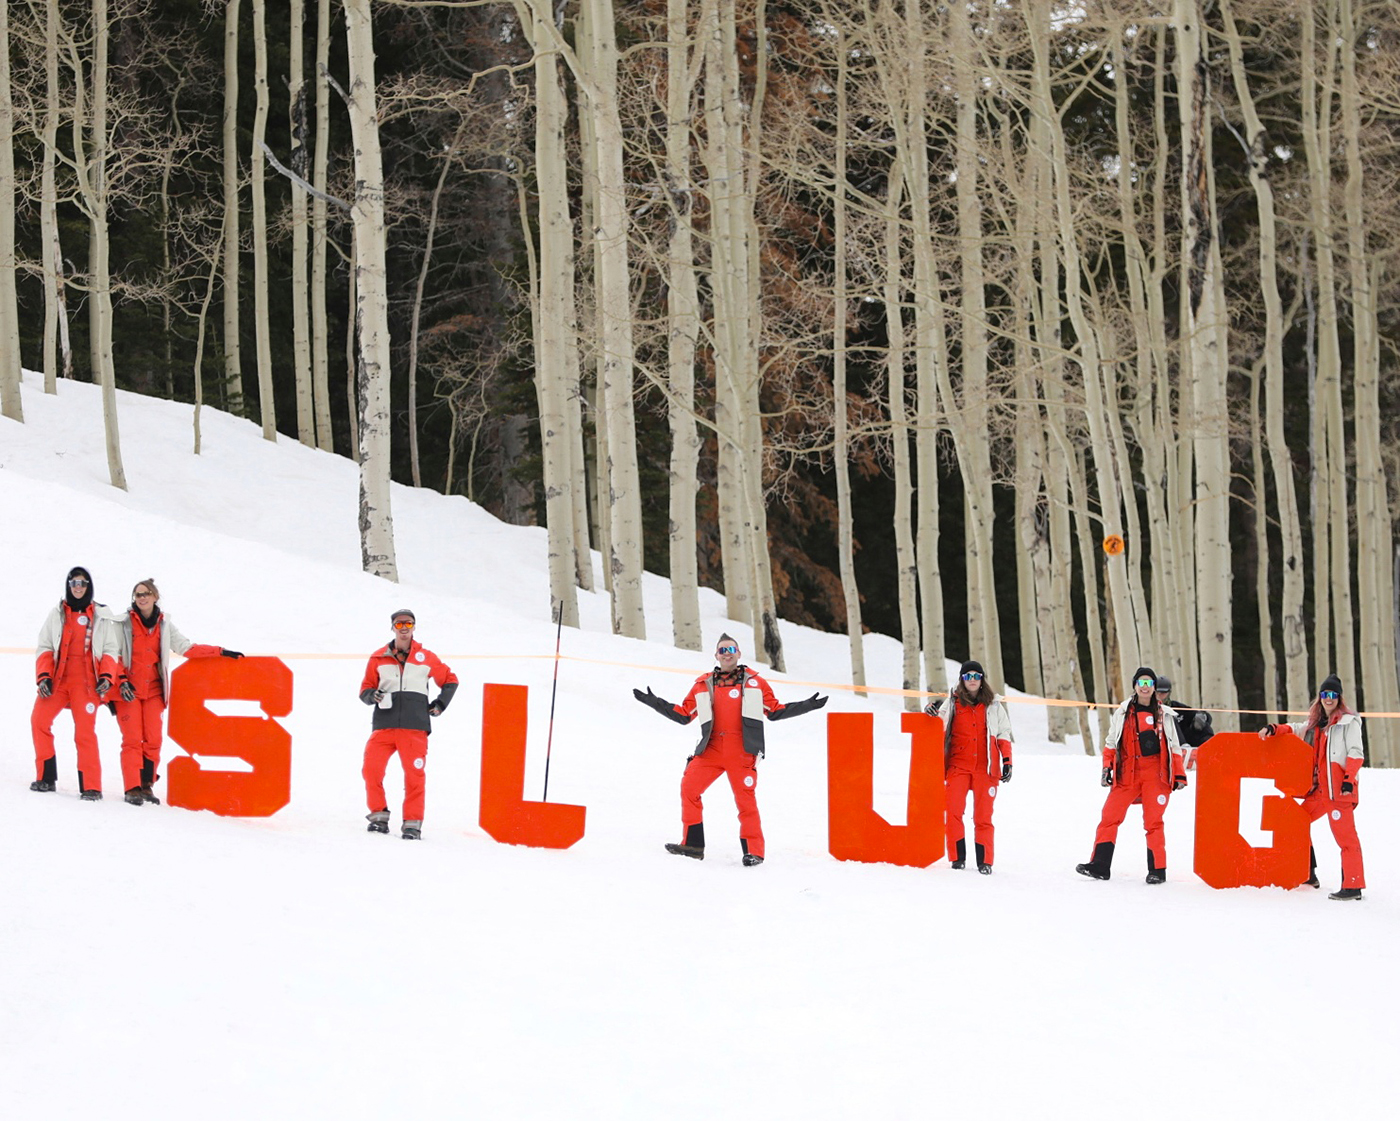 SLUG Team strikes some poses at the top of the hill with the S L U G Letters at the SLUG 20th Anniversary Meltdown Games at Brighton Resort.